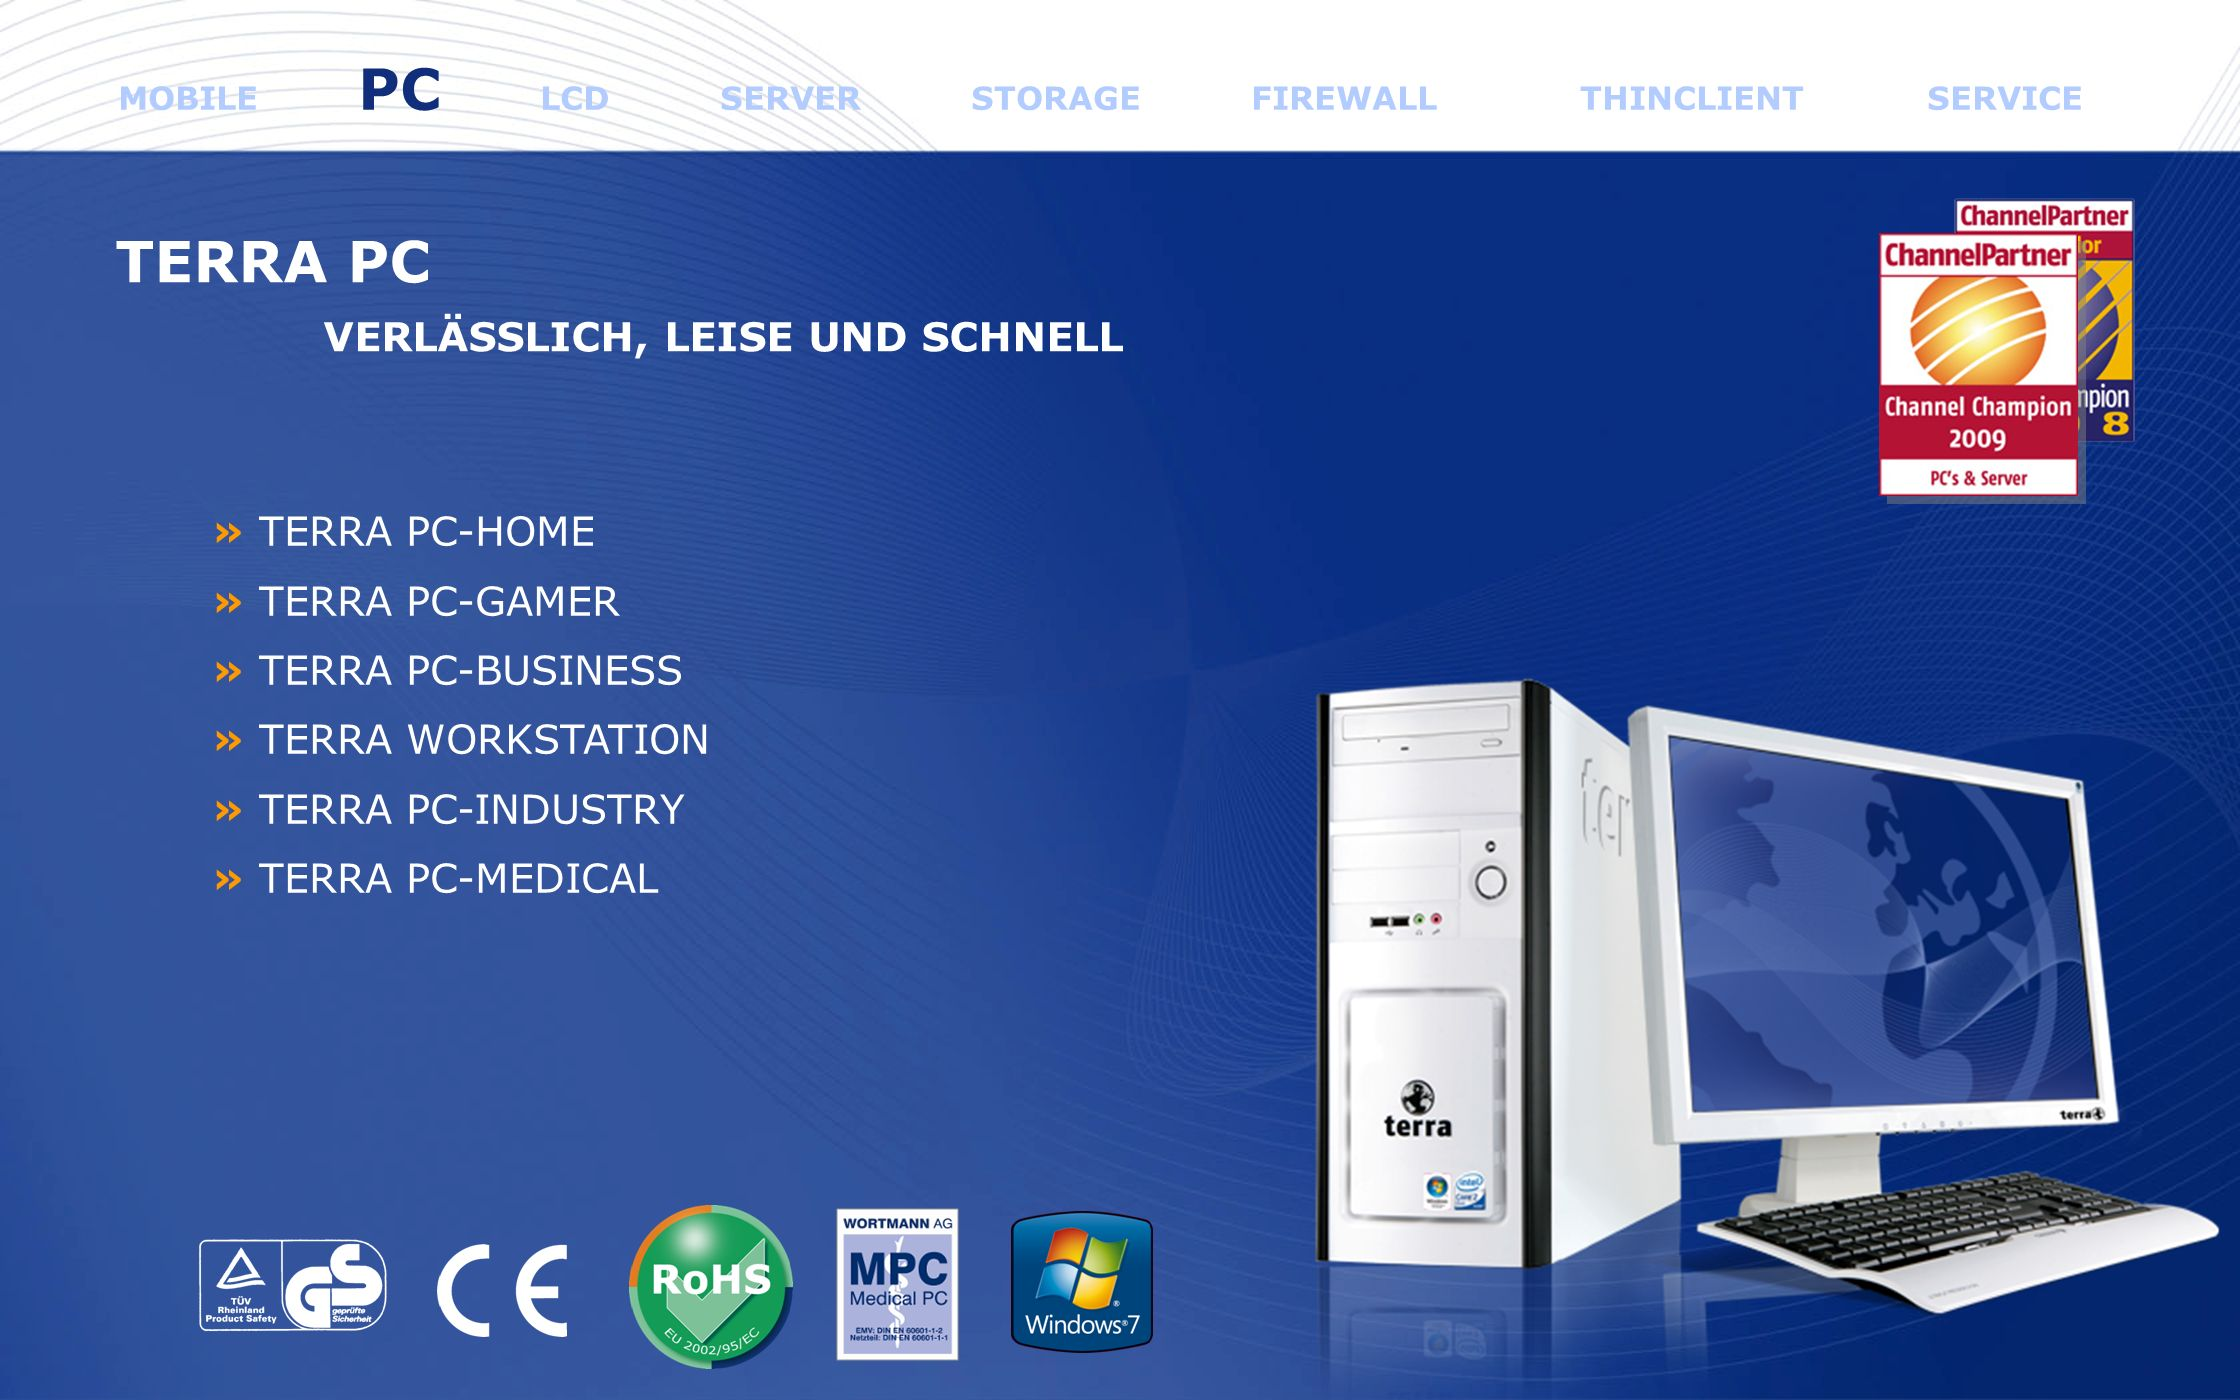 www.wortmann.de TERRA PC VERLÄSSLICH, LEISE UND SCHNELL » TERRA PC-HOME » TERRA PC-GAMER » TERRA PC-BUSINESS » TERRA WORKSTATION » TERRA PC-INDUSTRY »